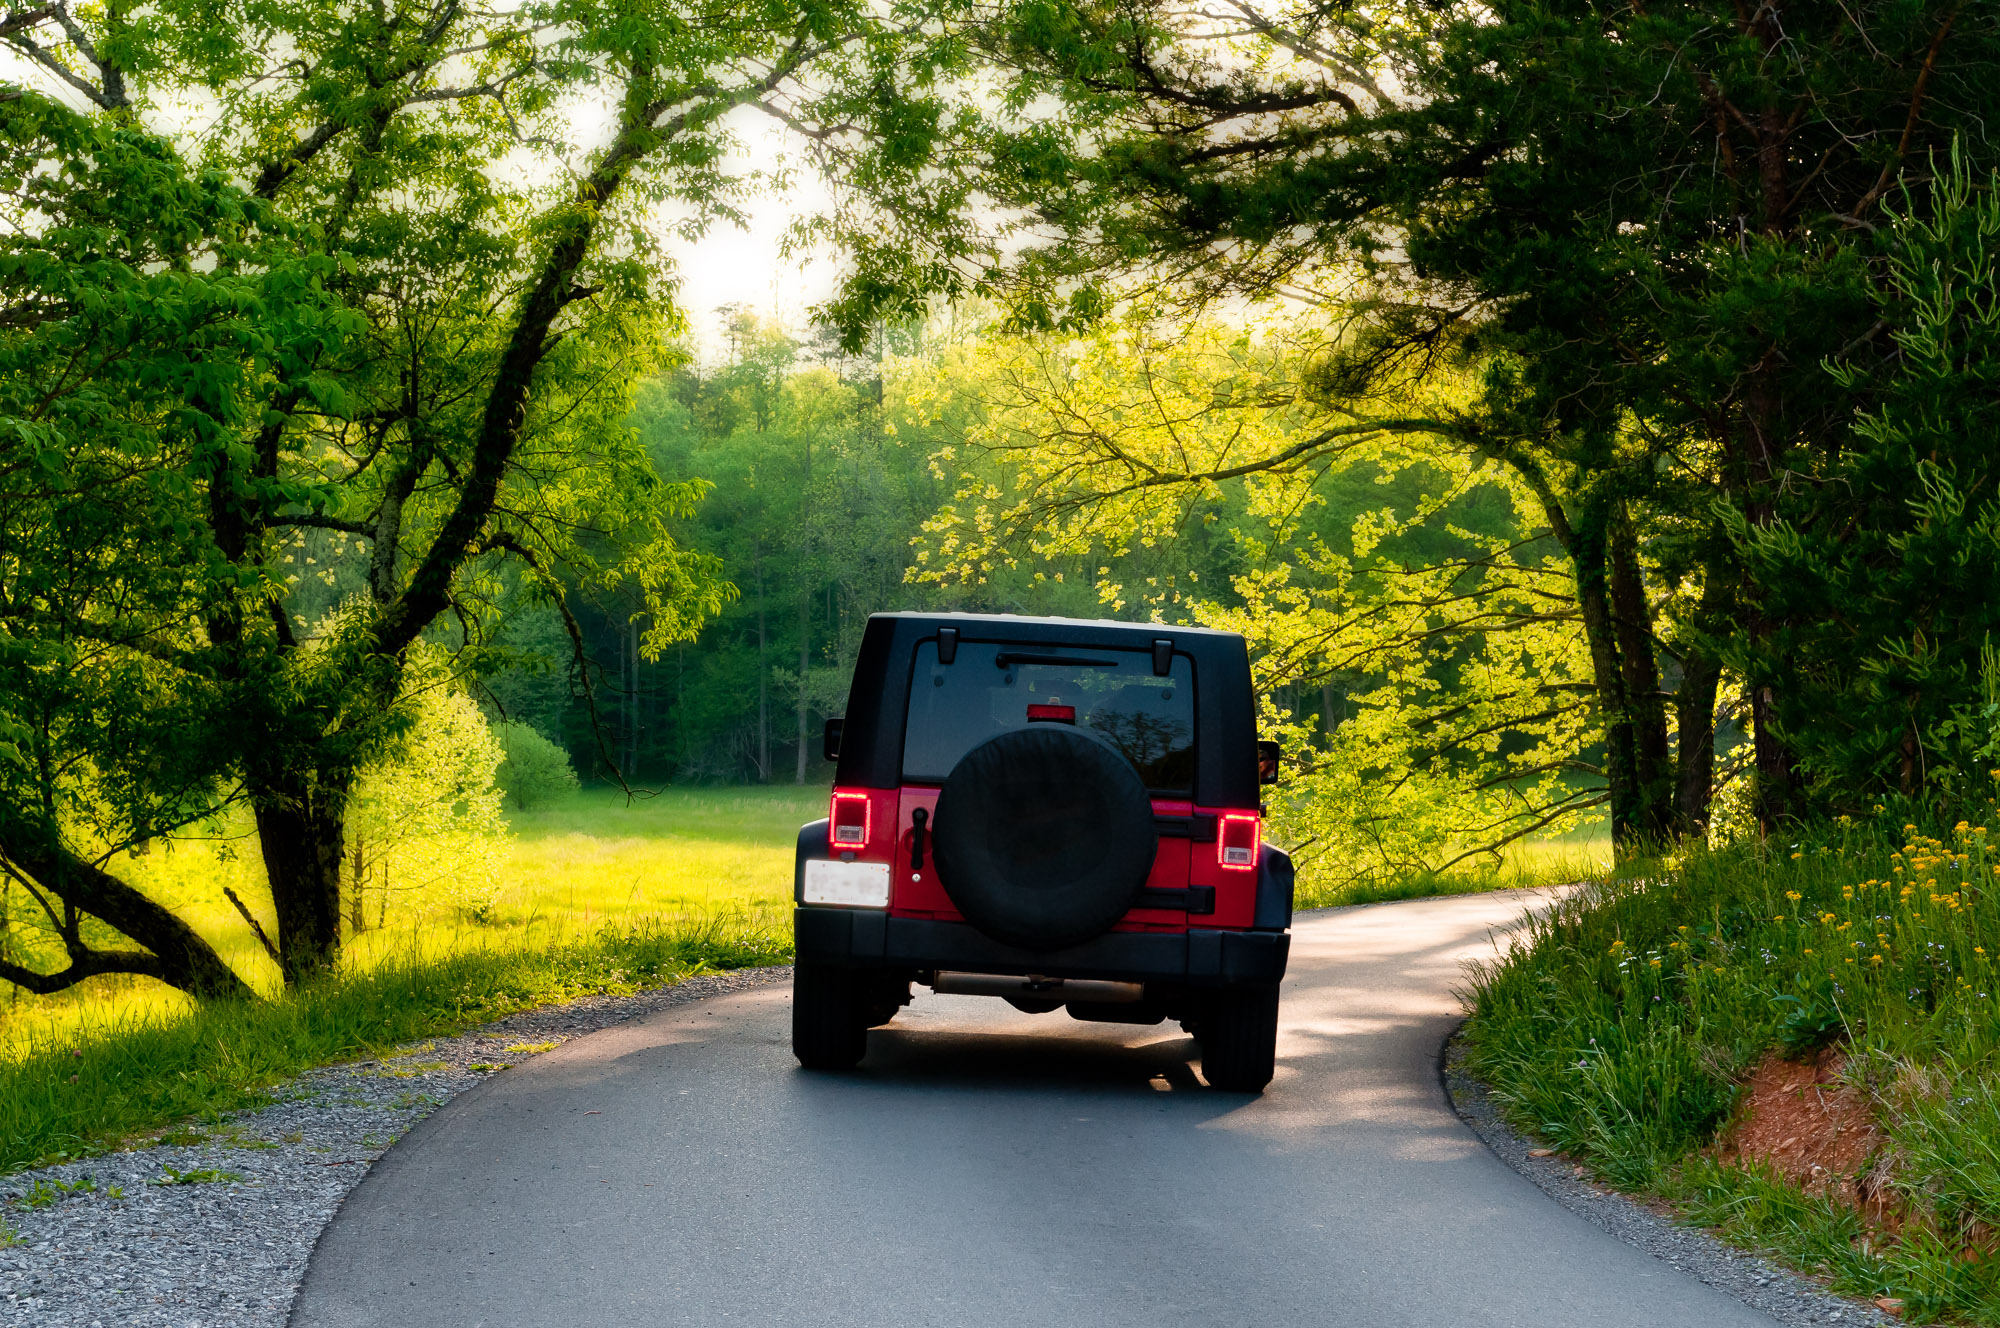 Jeep in Cades Cove - Great Smoky Mountains National Park, Tennessee